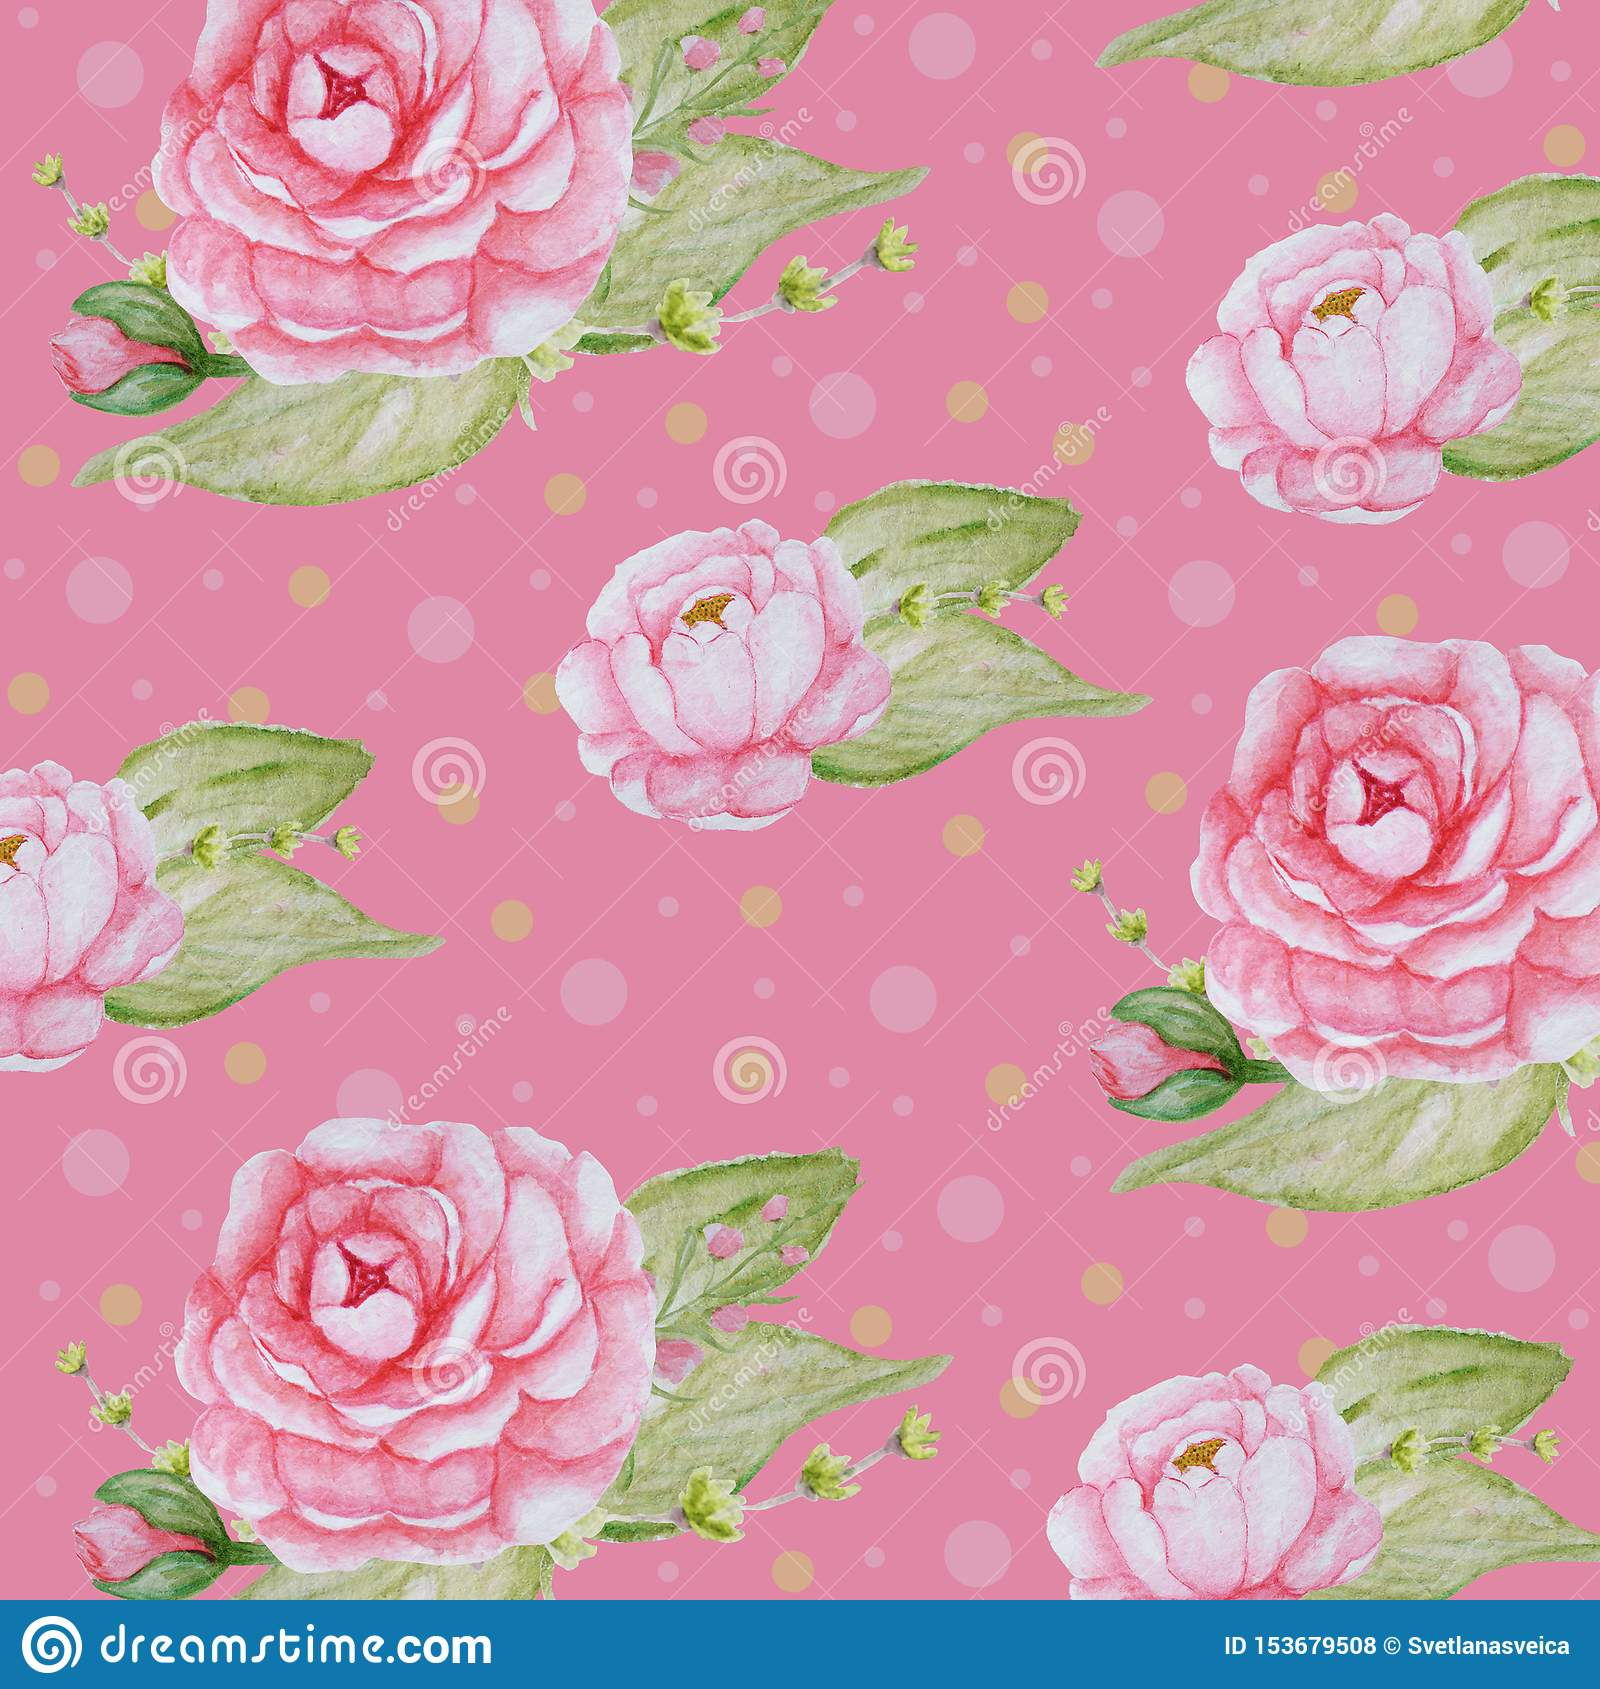 Watercolor Peony Flowers pattern, Pink Peonies texture, Romantic Scrapbook paper on pink background